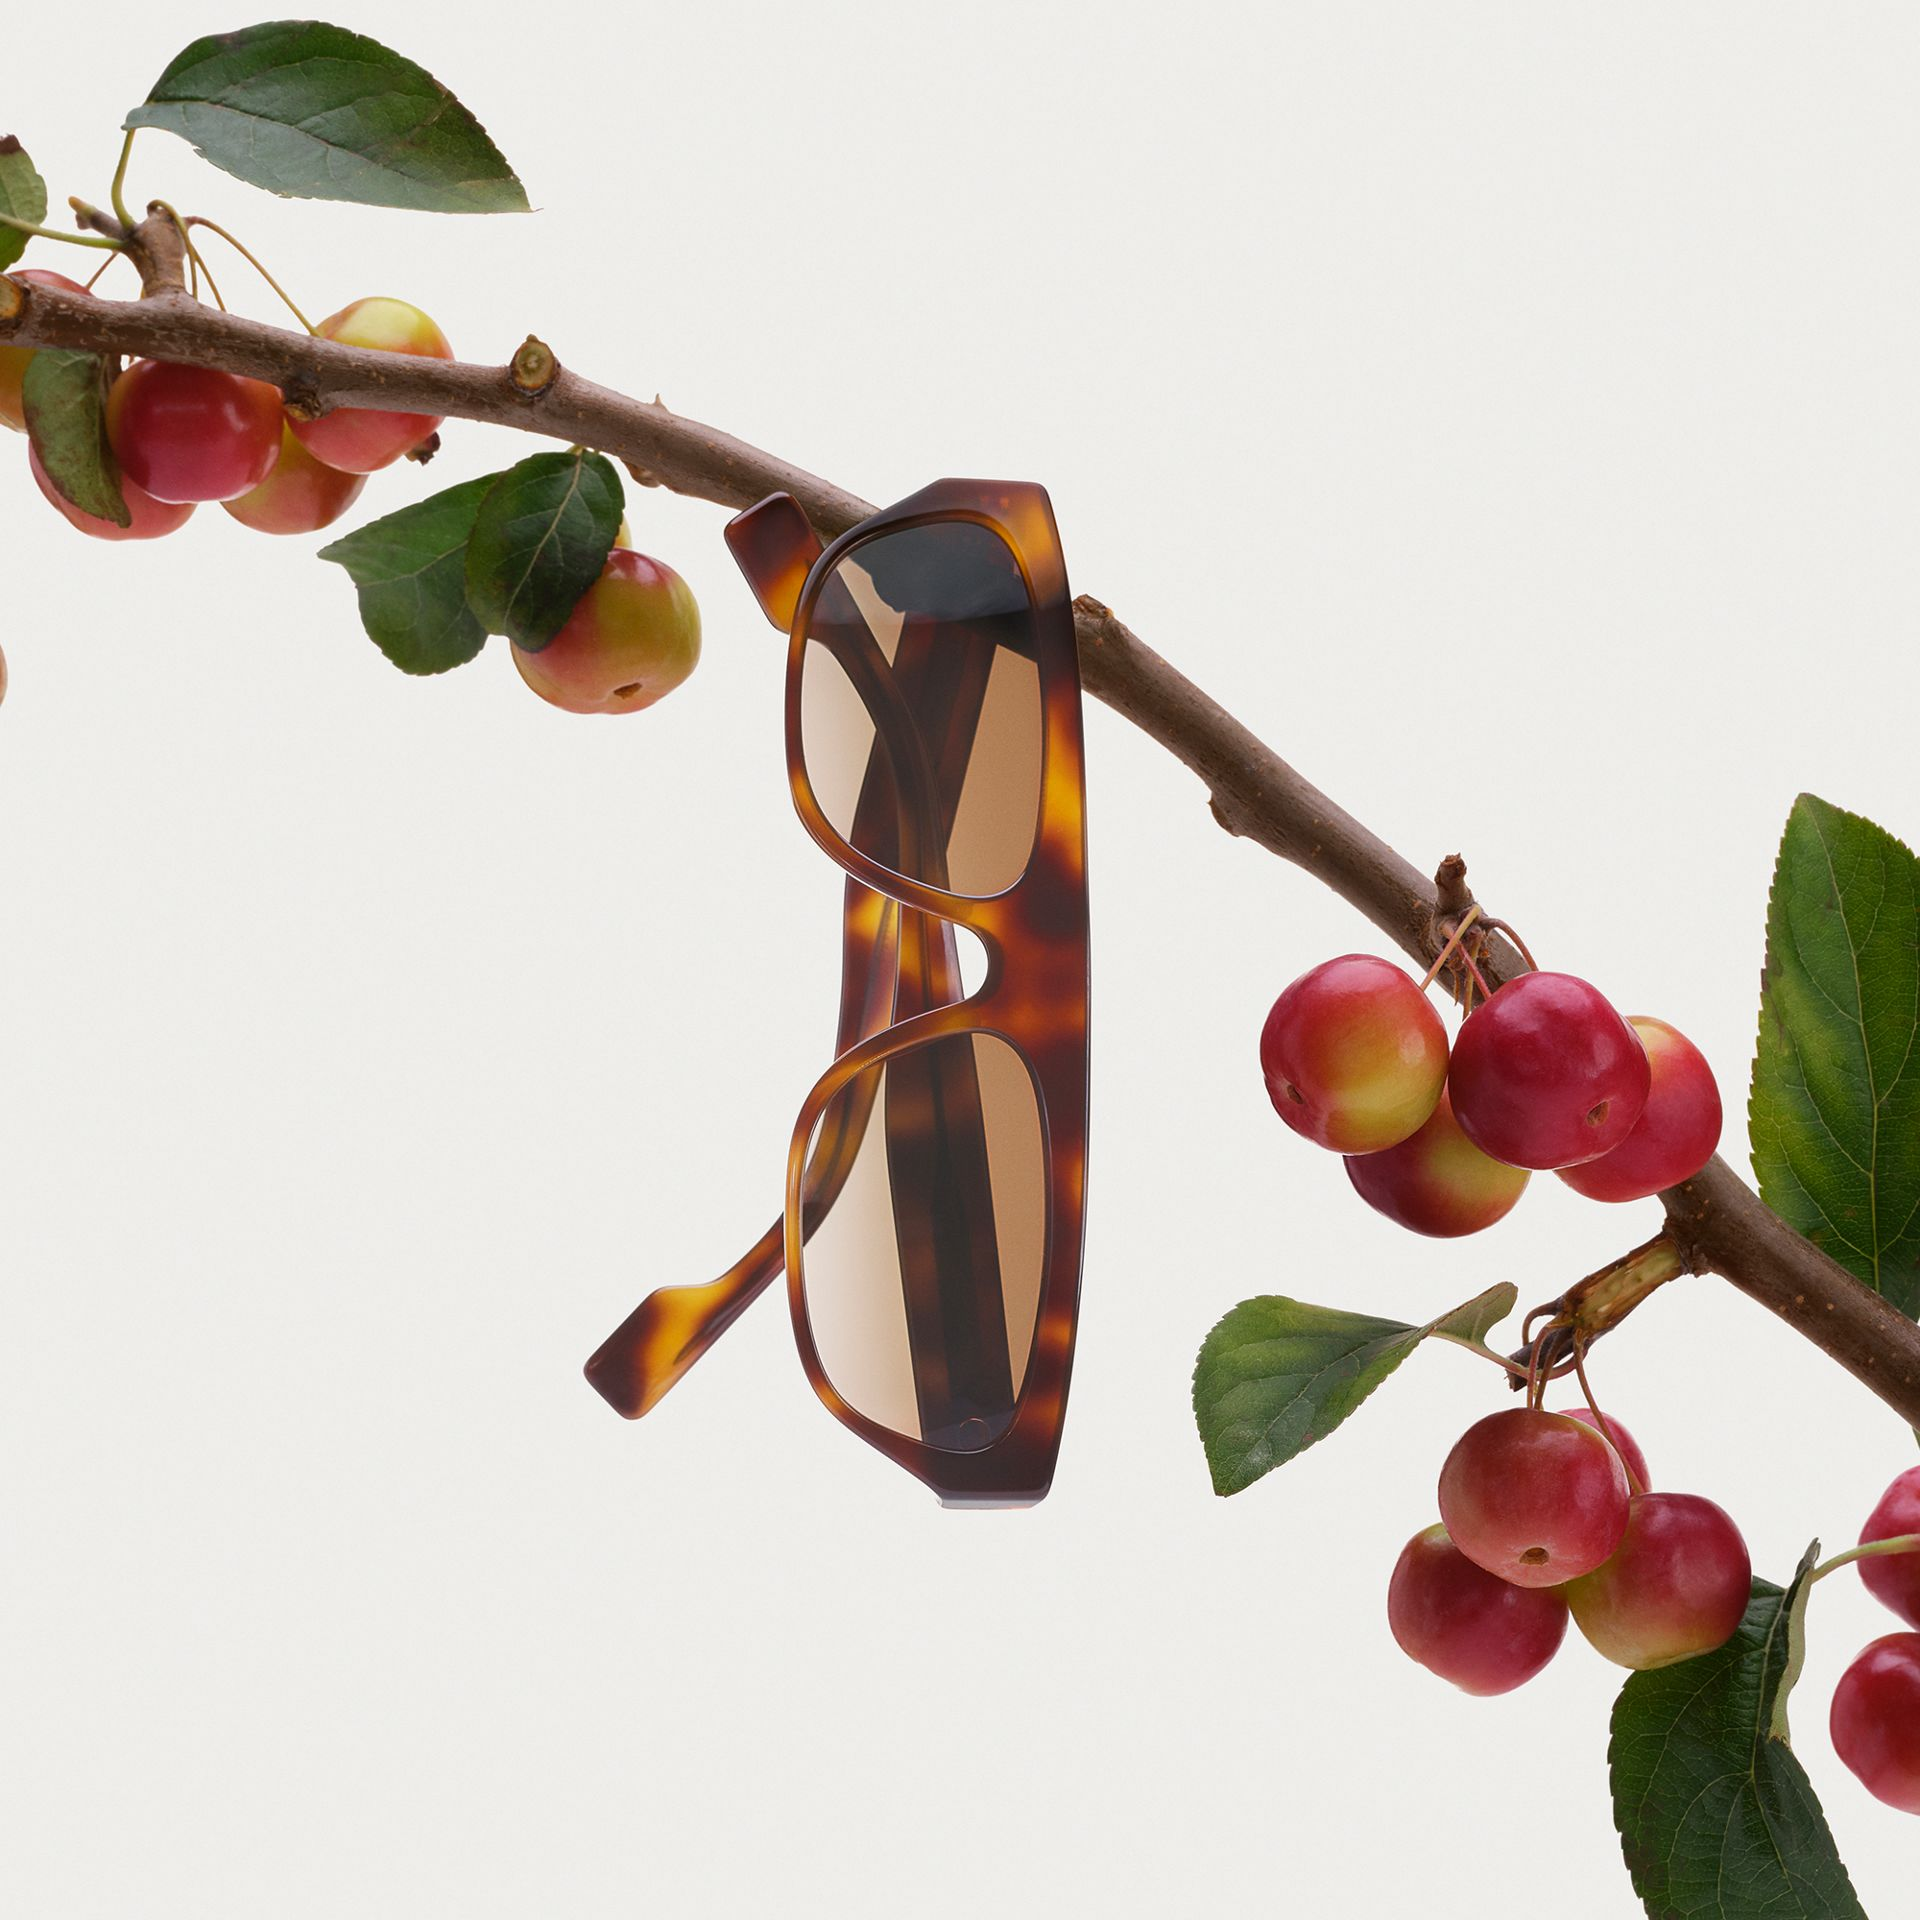 Monogram Motif Rectangular Frame Sunglasses in Amber Tortoiseshell | Burberry - gallery image 1